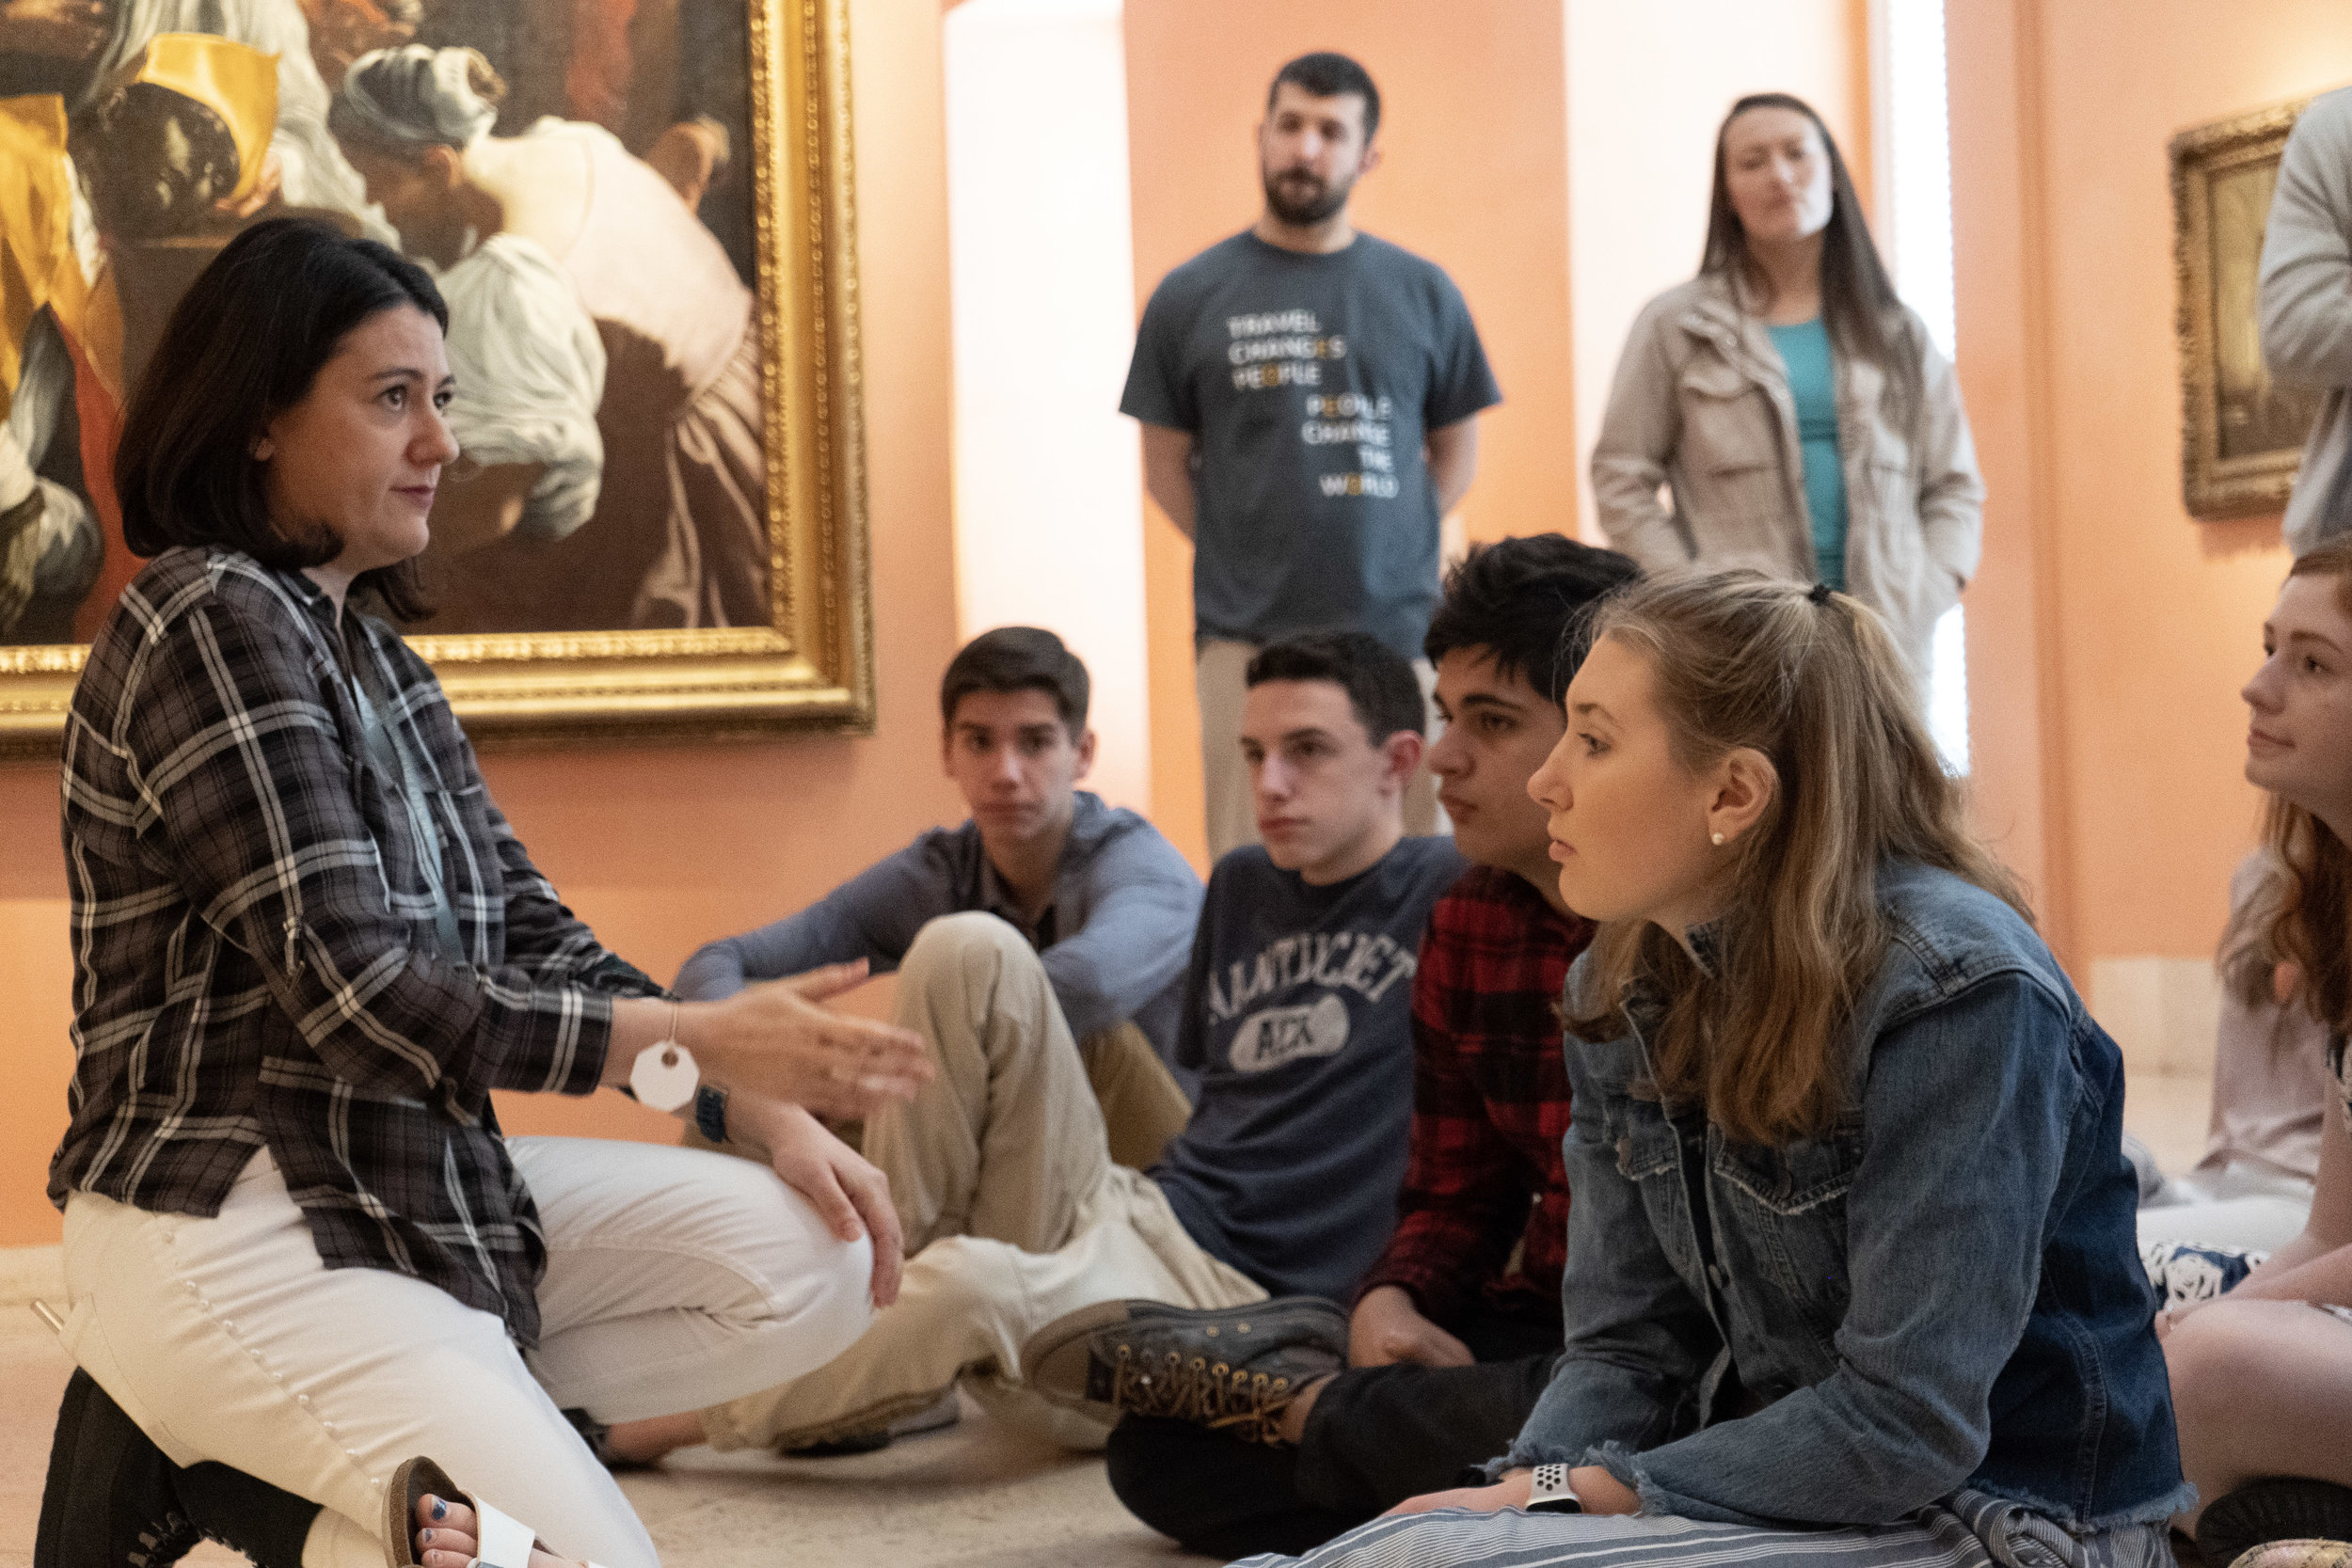 Our visit to Madrid's Thyssen-Bornemisza Museum that explored themes, such as reality and perception.